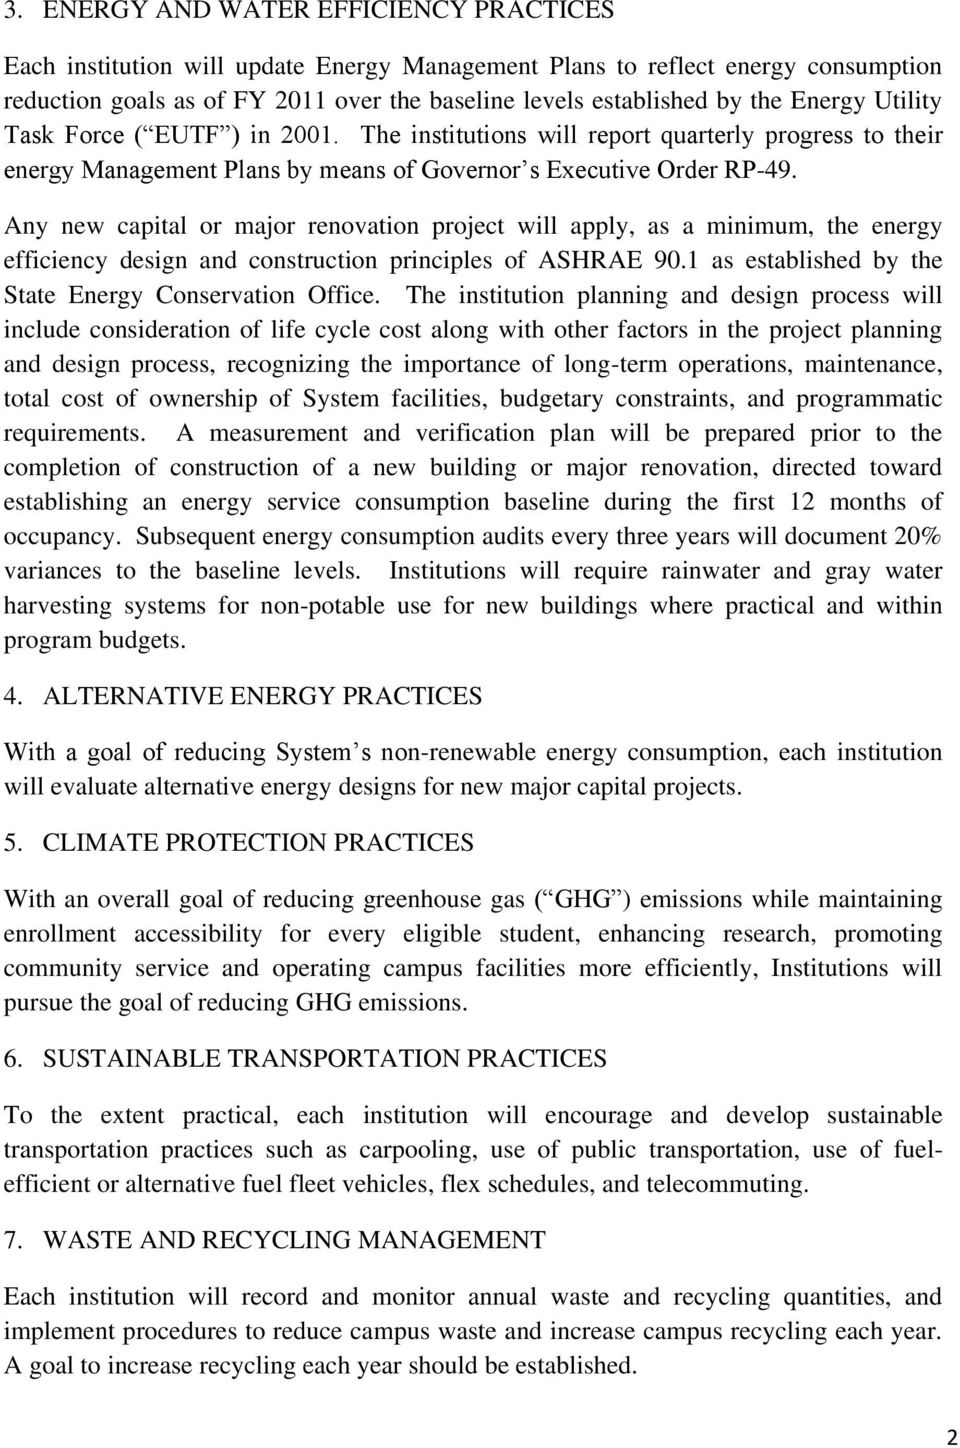 Any new capital or major renovation project will apply, as a minimum, the energy efficiency design and construction principles of ASHRAE 90.1 as established by the State Energy Conservation Office.